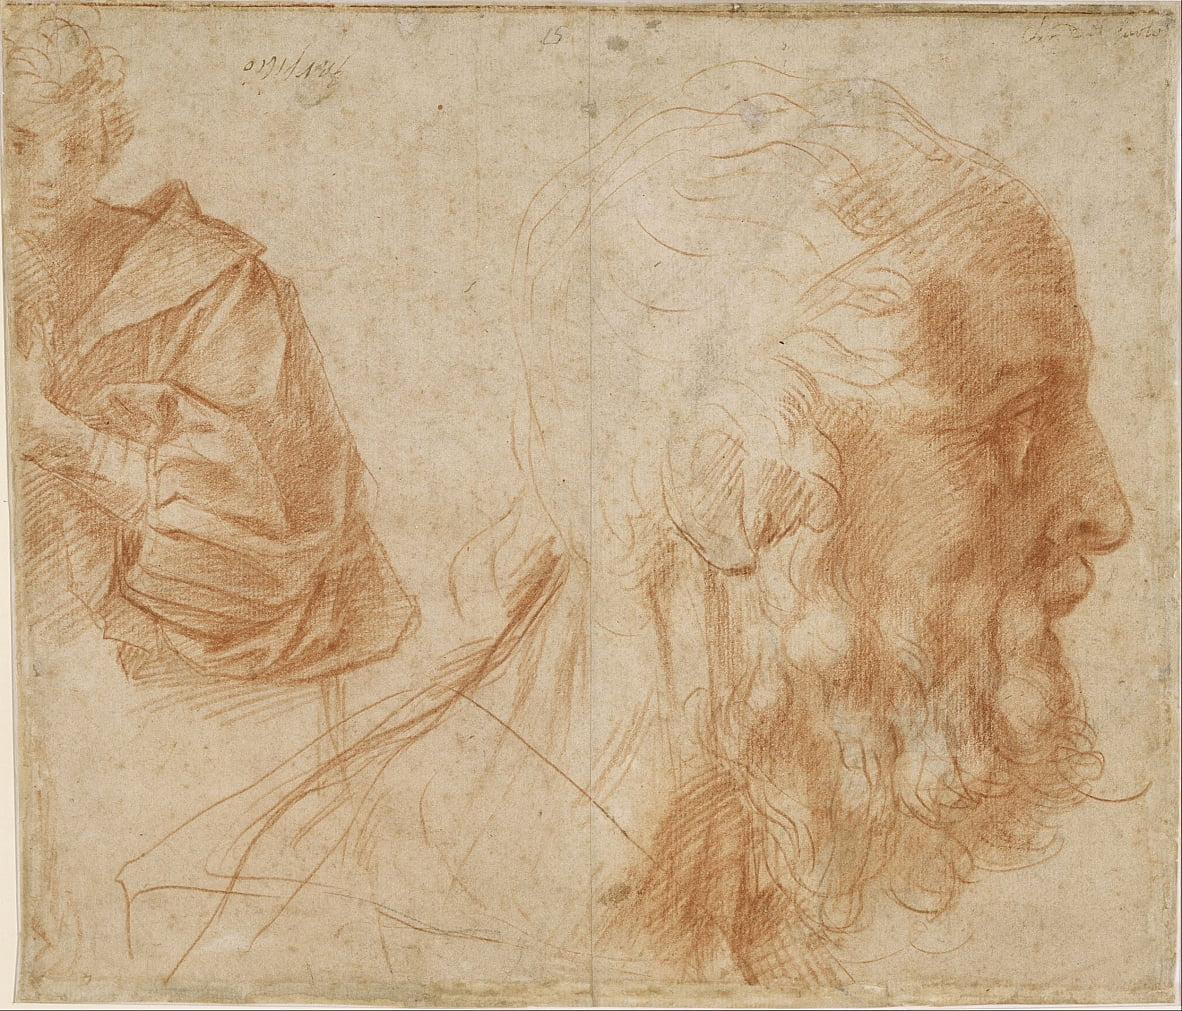 Sheet of studies with a youth and the head of an old man looking to the right by Andrea del Sarto